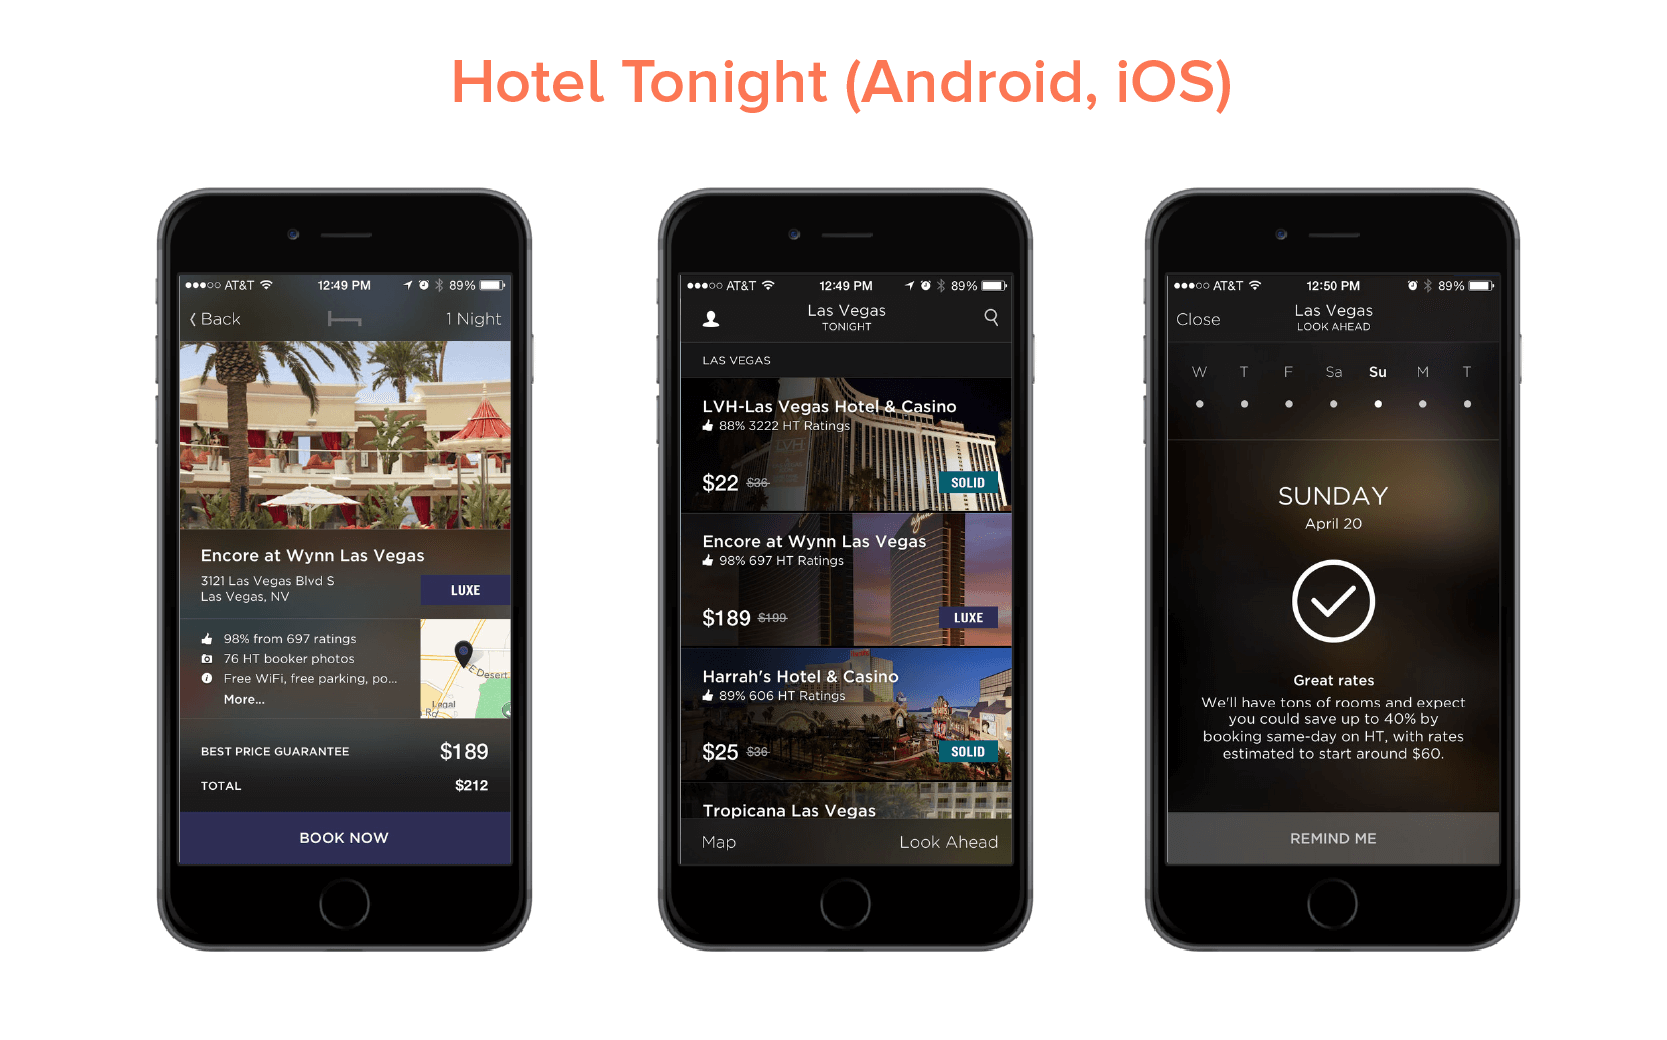 Hotel Tonight (Android, iOS)